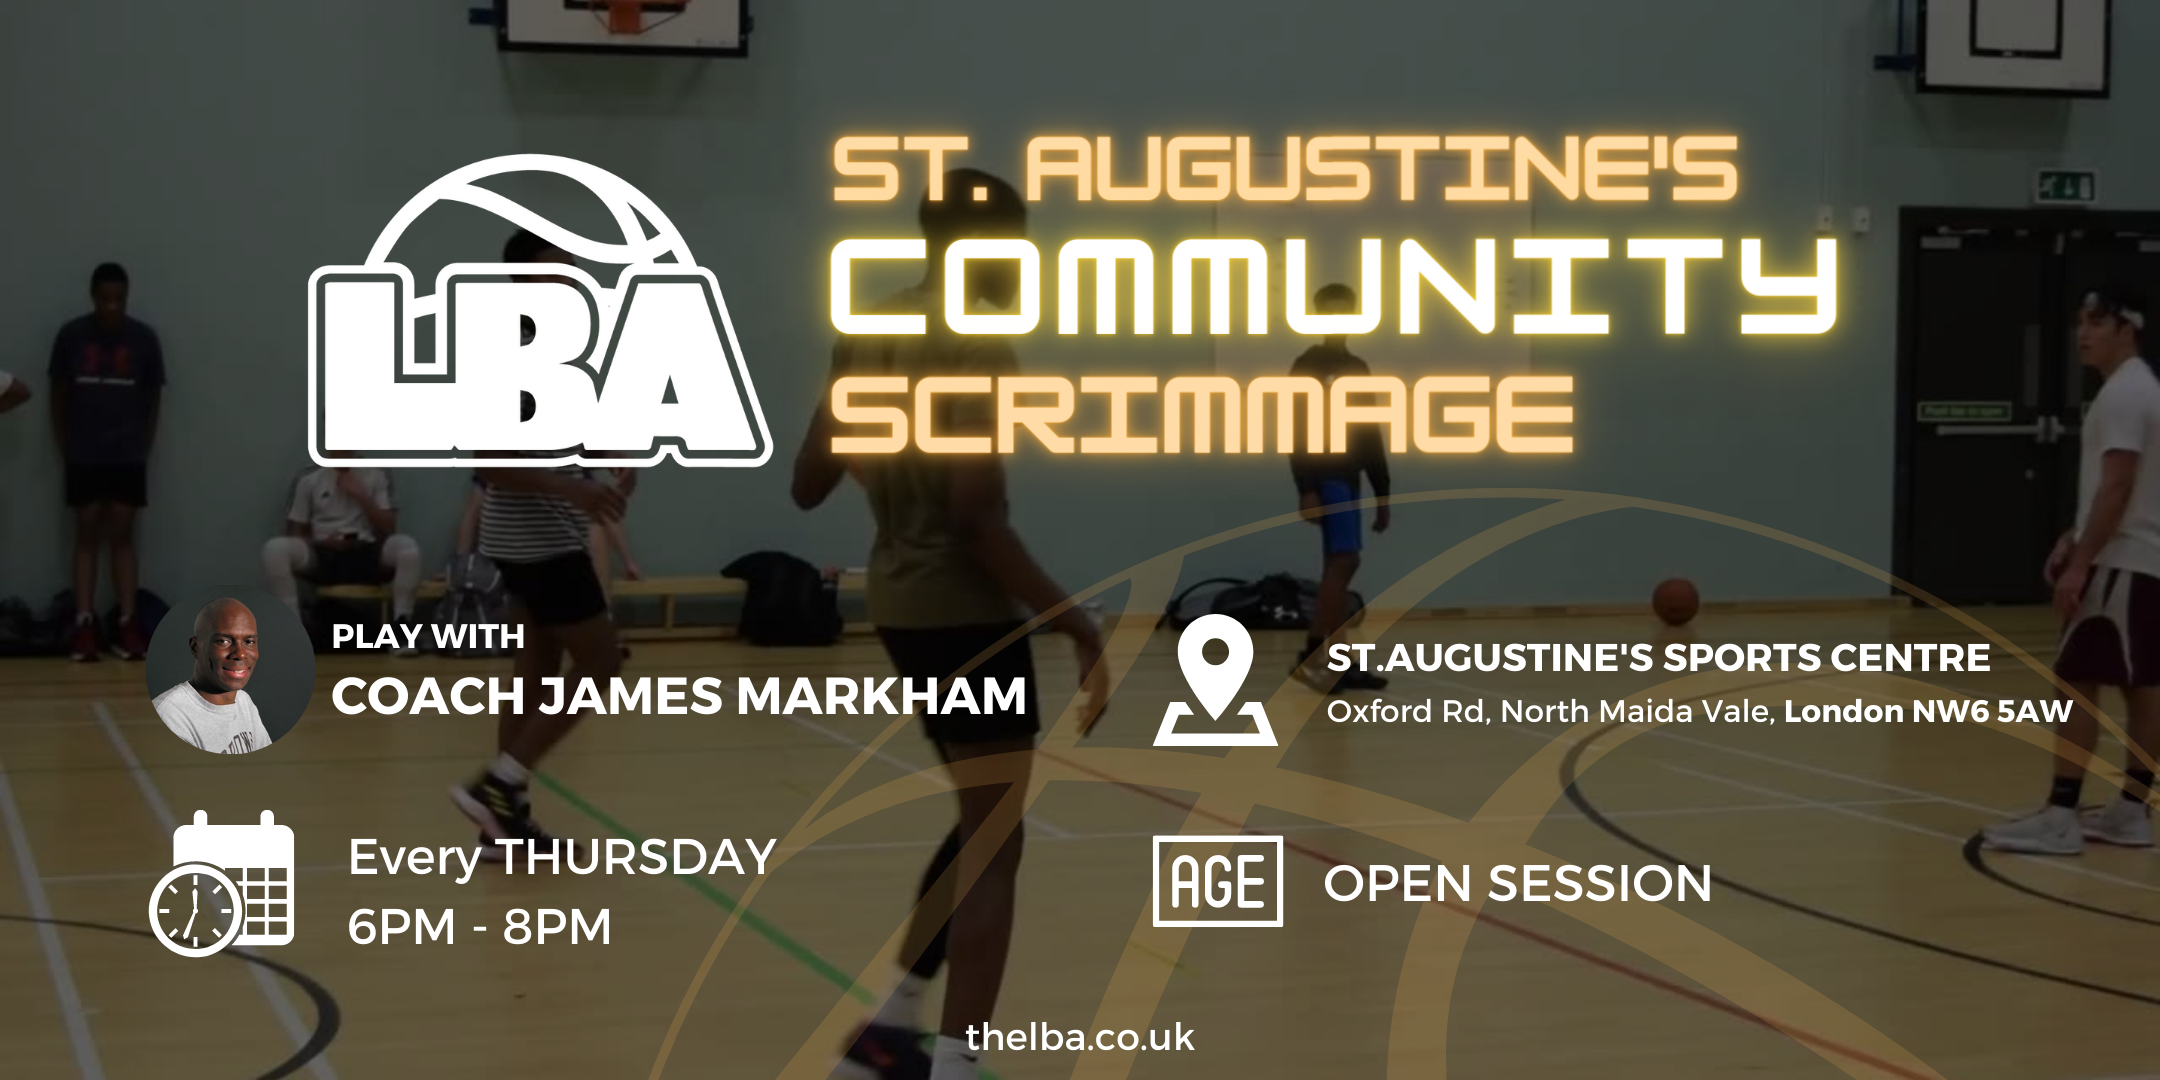 St Augustine's Community Scrimmages - Weekly Basketball